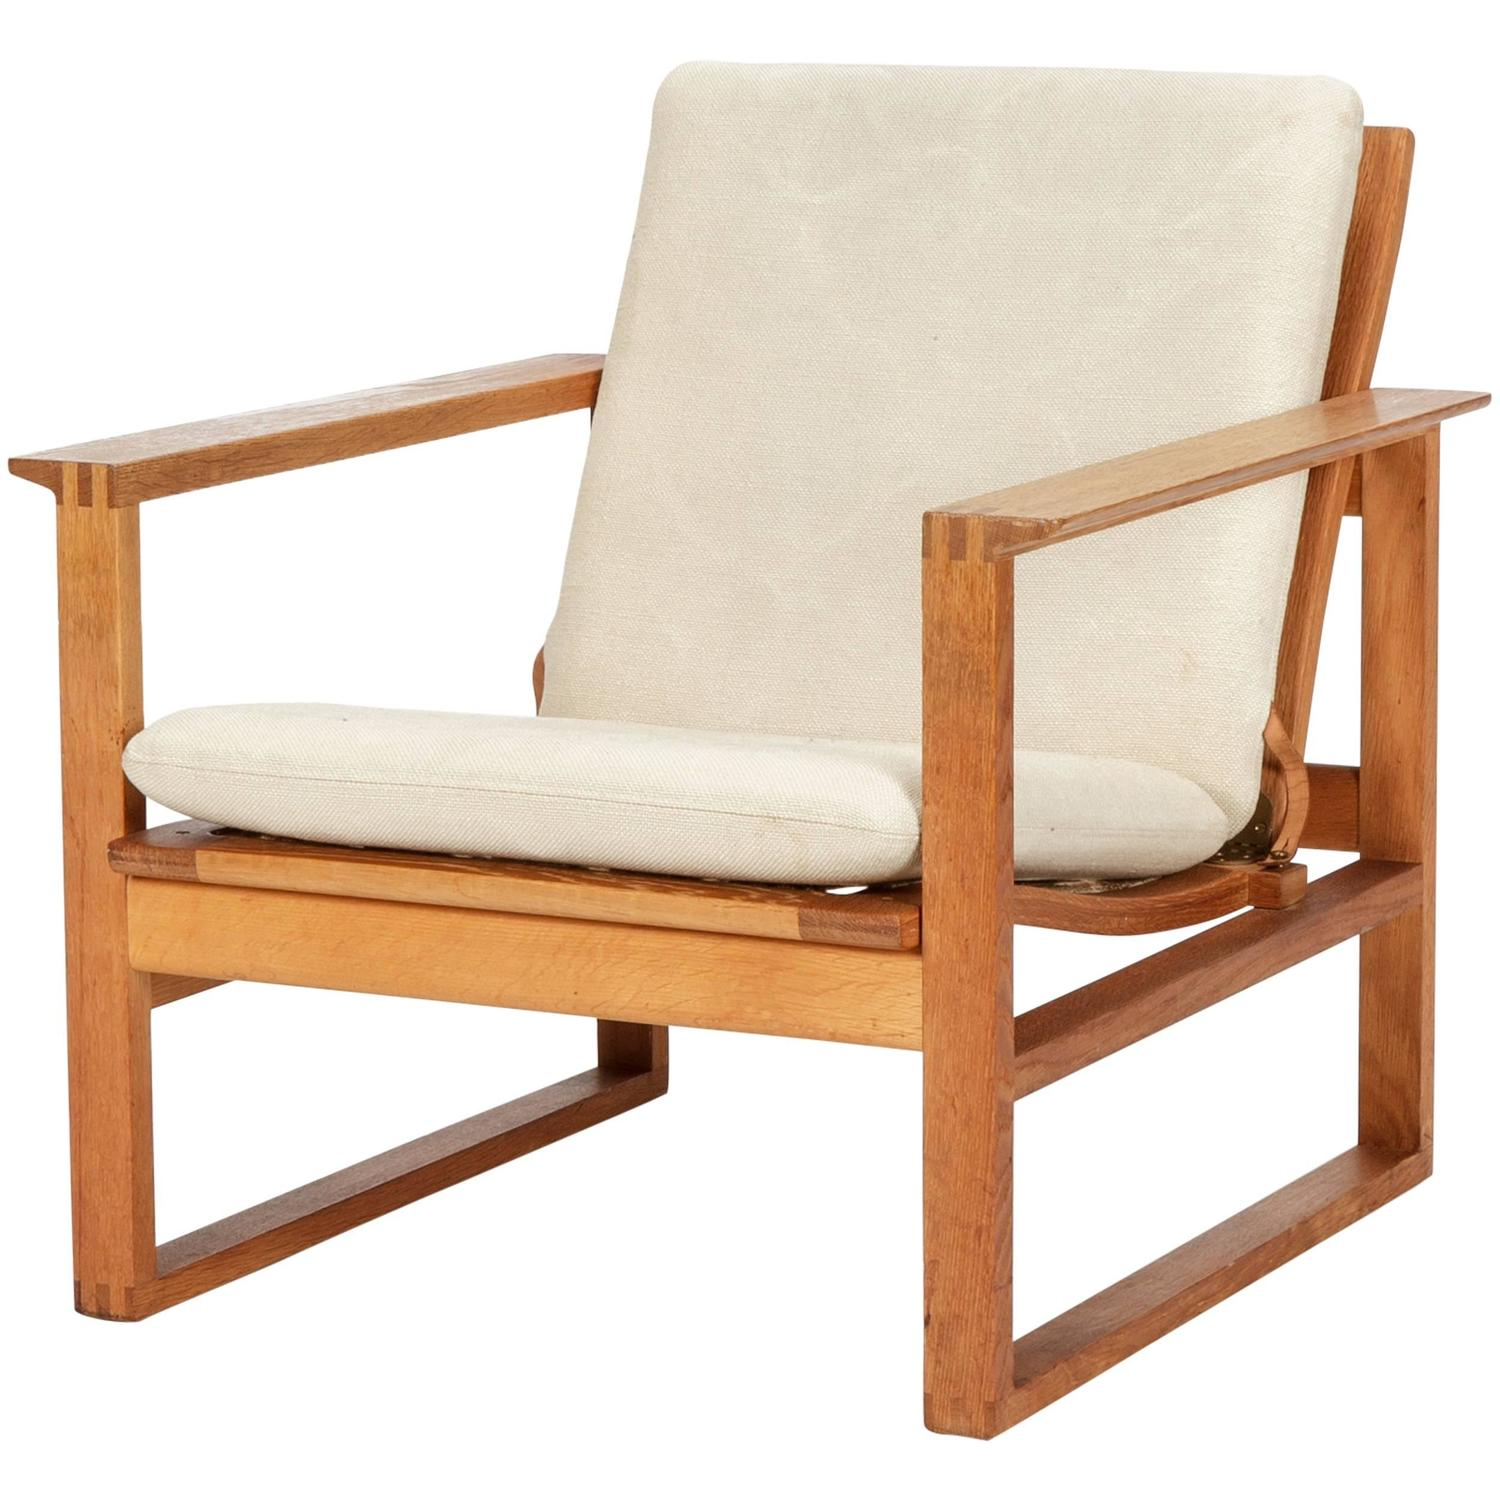 Danish Borge Mogensen Lounge Chair 2256 Oak 1956 For Sale at 1stdibs